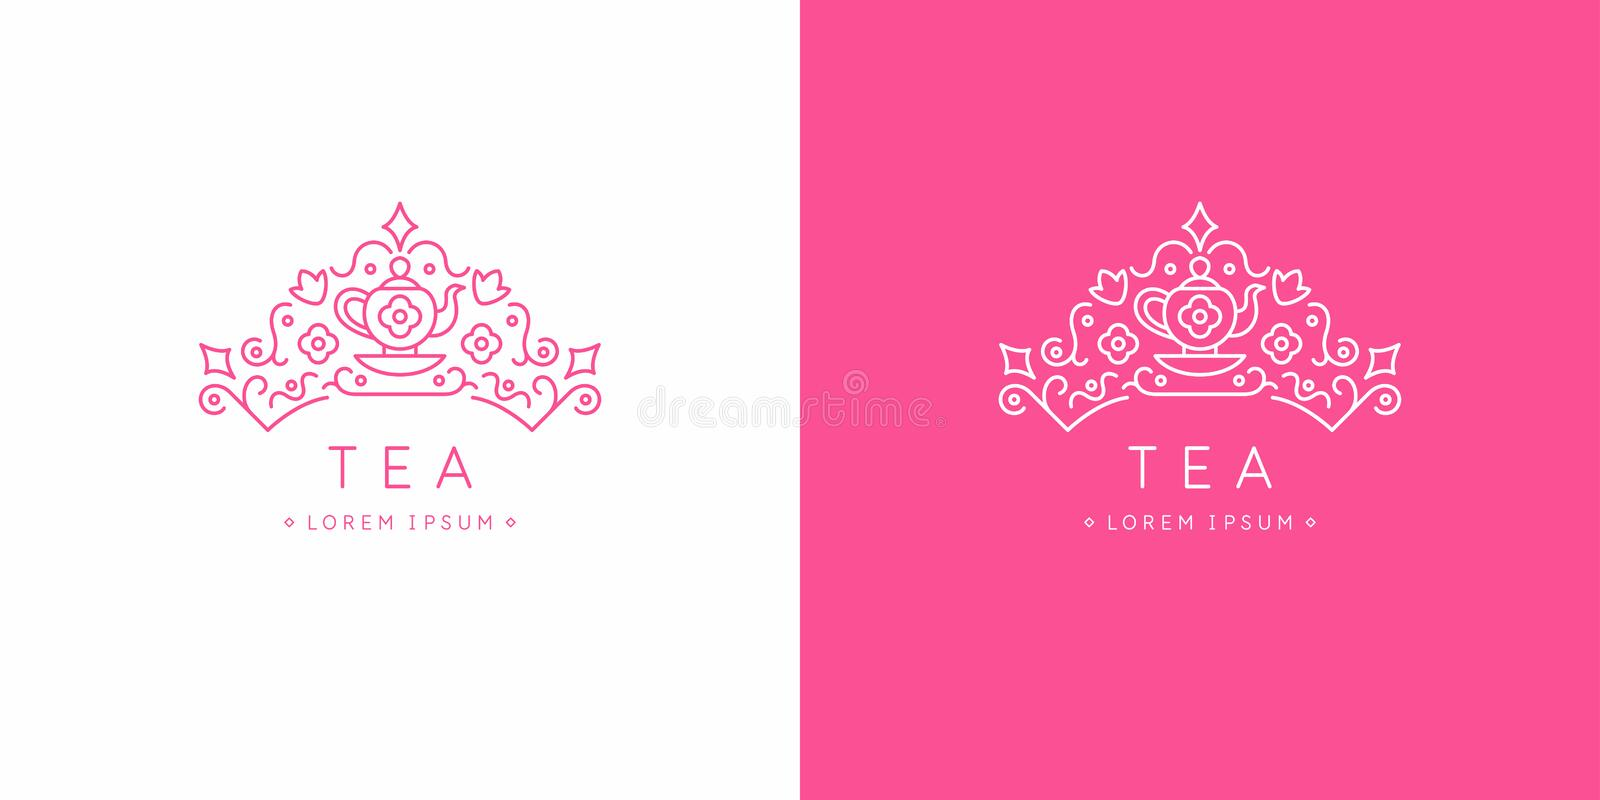 Original linear image of the crown. Isolated vector emblem. Illustration in simple flat style. Sign for tea company. royalty free illustration